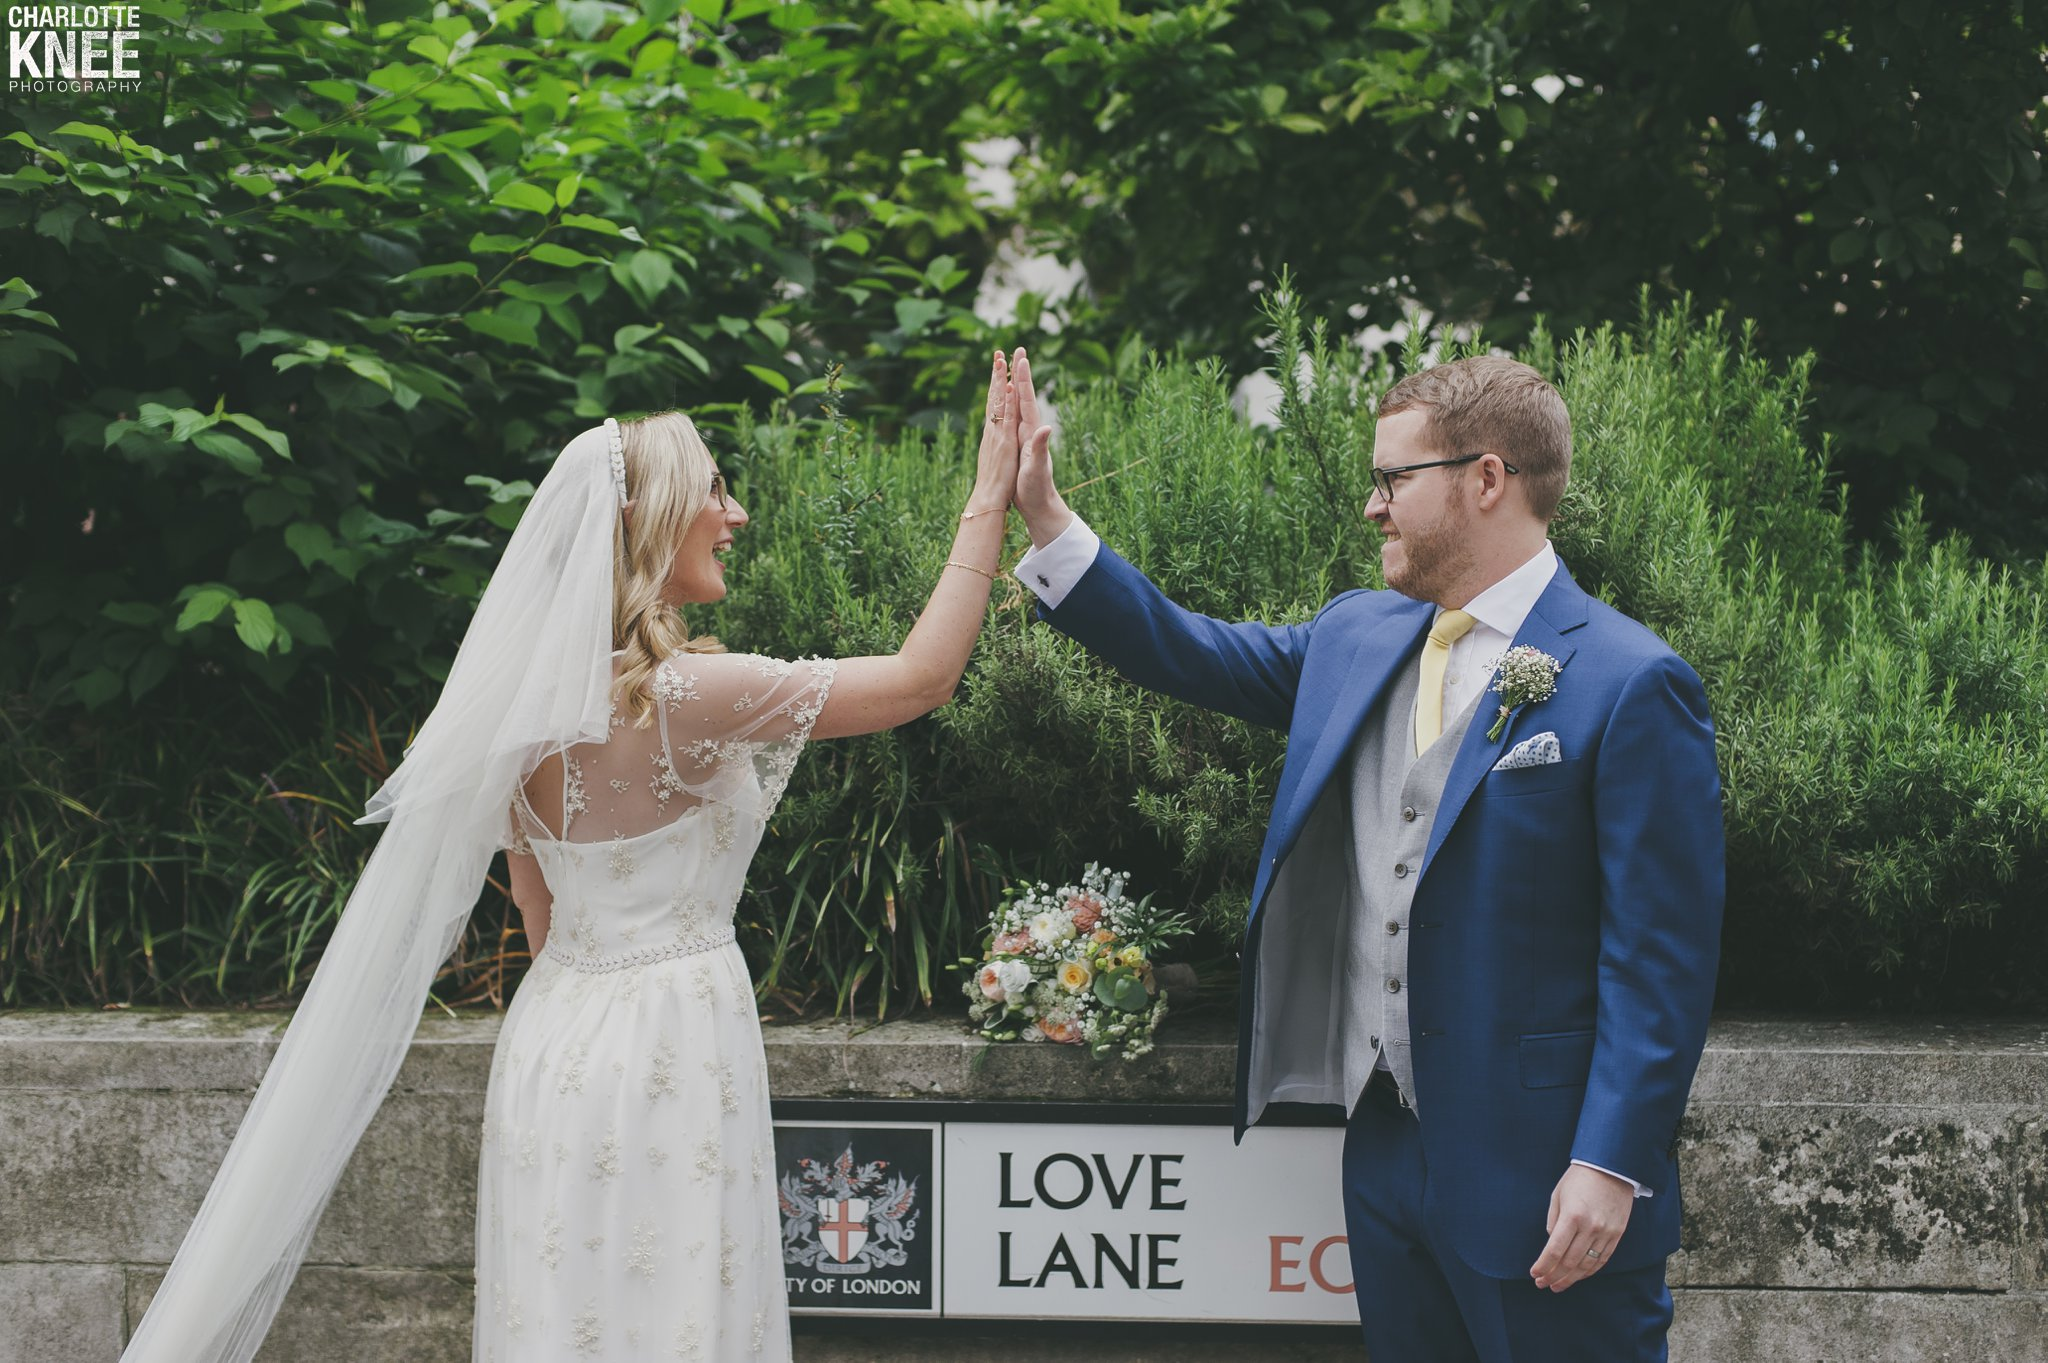 Saddlers Hall London Wedding Photography Copyright Charlotte Knee Photography_0115.jpg